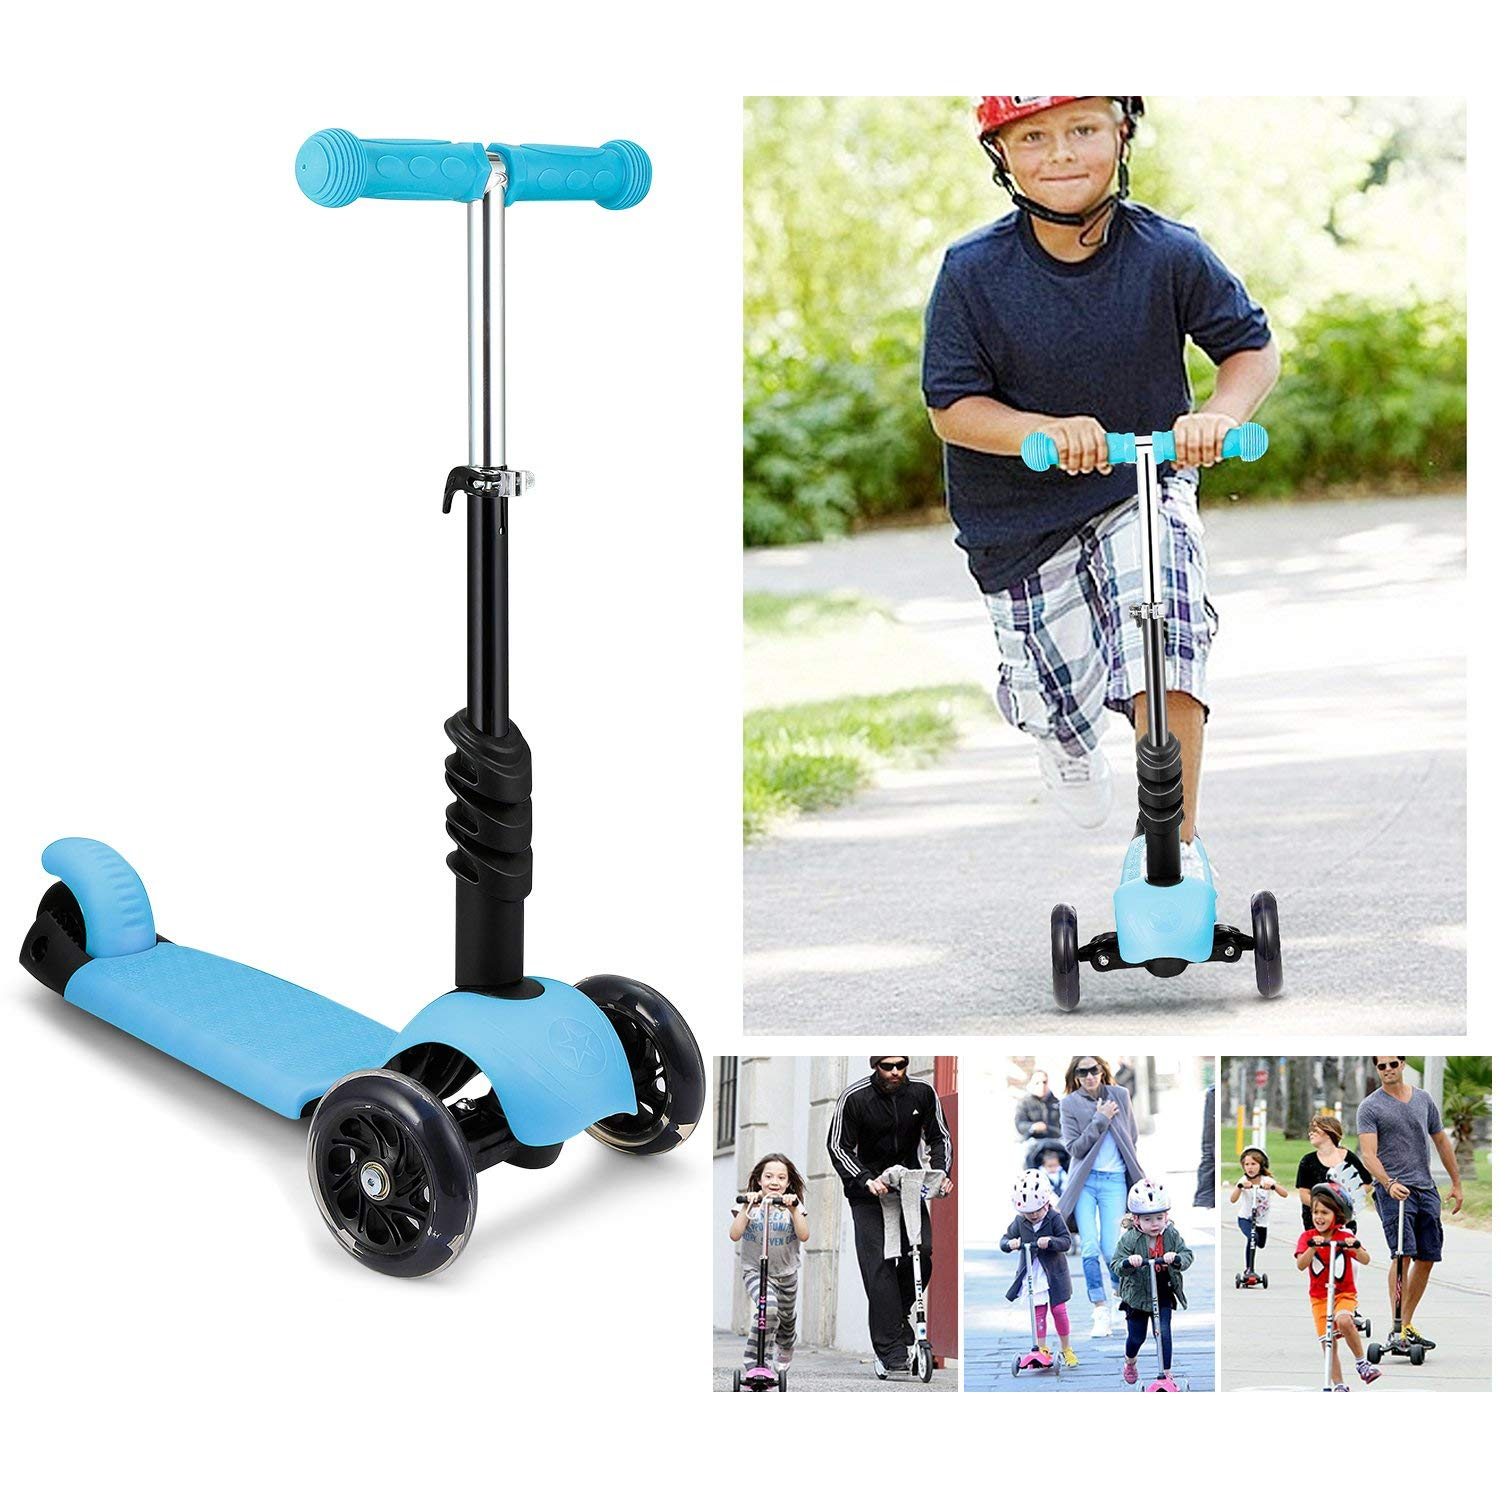 2 in 1 Kick Scooter , Kick Scooters for Kids,Adjustable Height w Extra-Wide with Removable Seat Great for Kids Toddlers Girls or Boys Deck PU Flashing Wheels for Children from 3 to 10 Year-Old